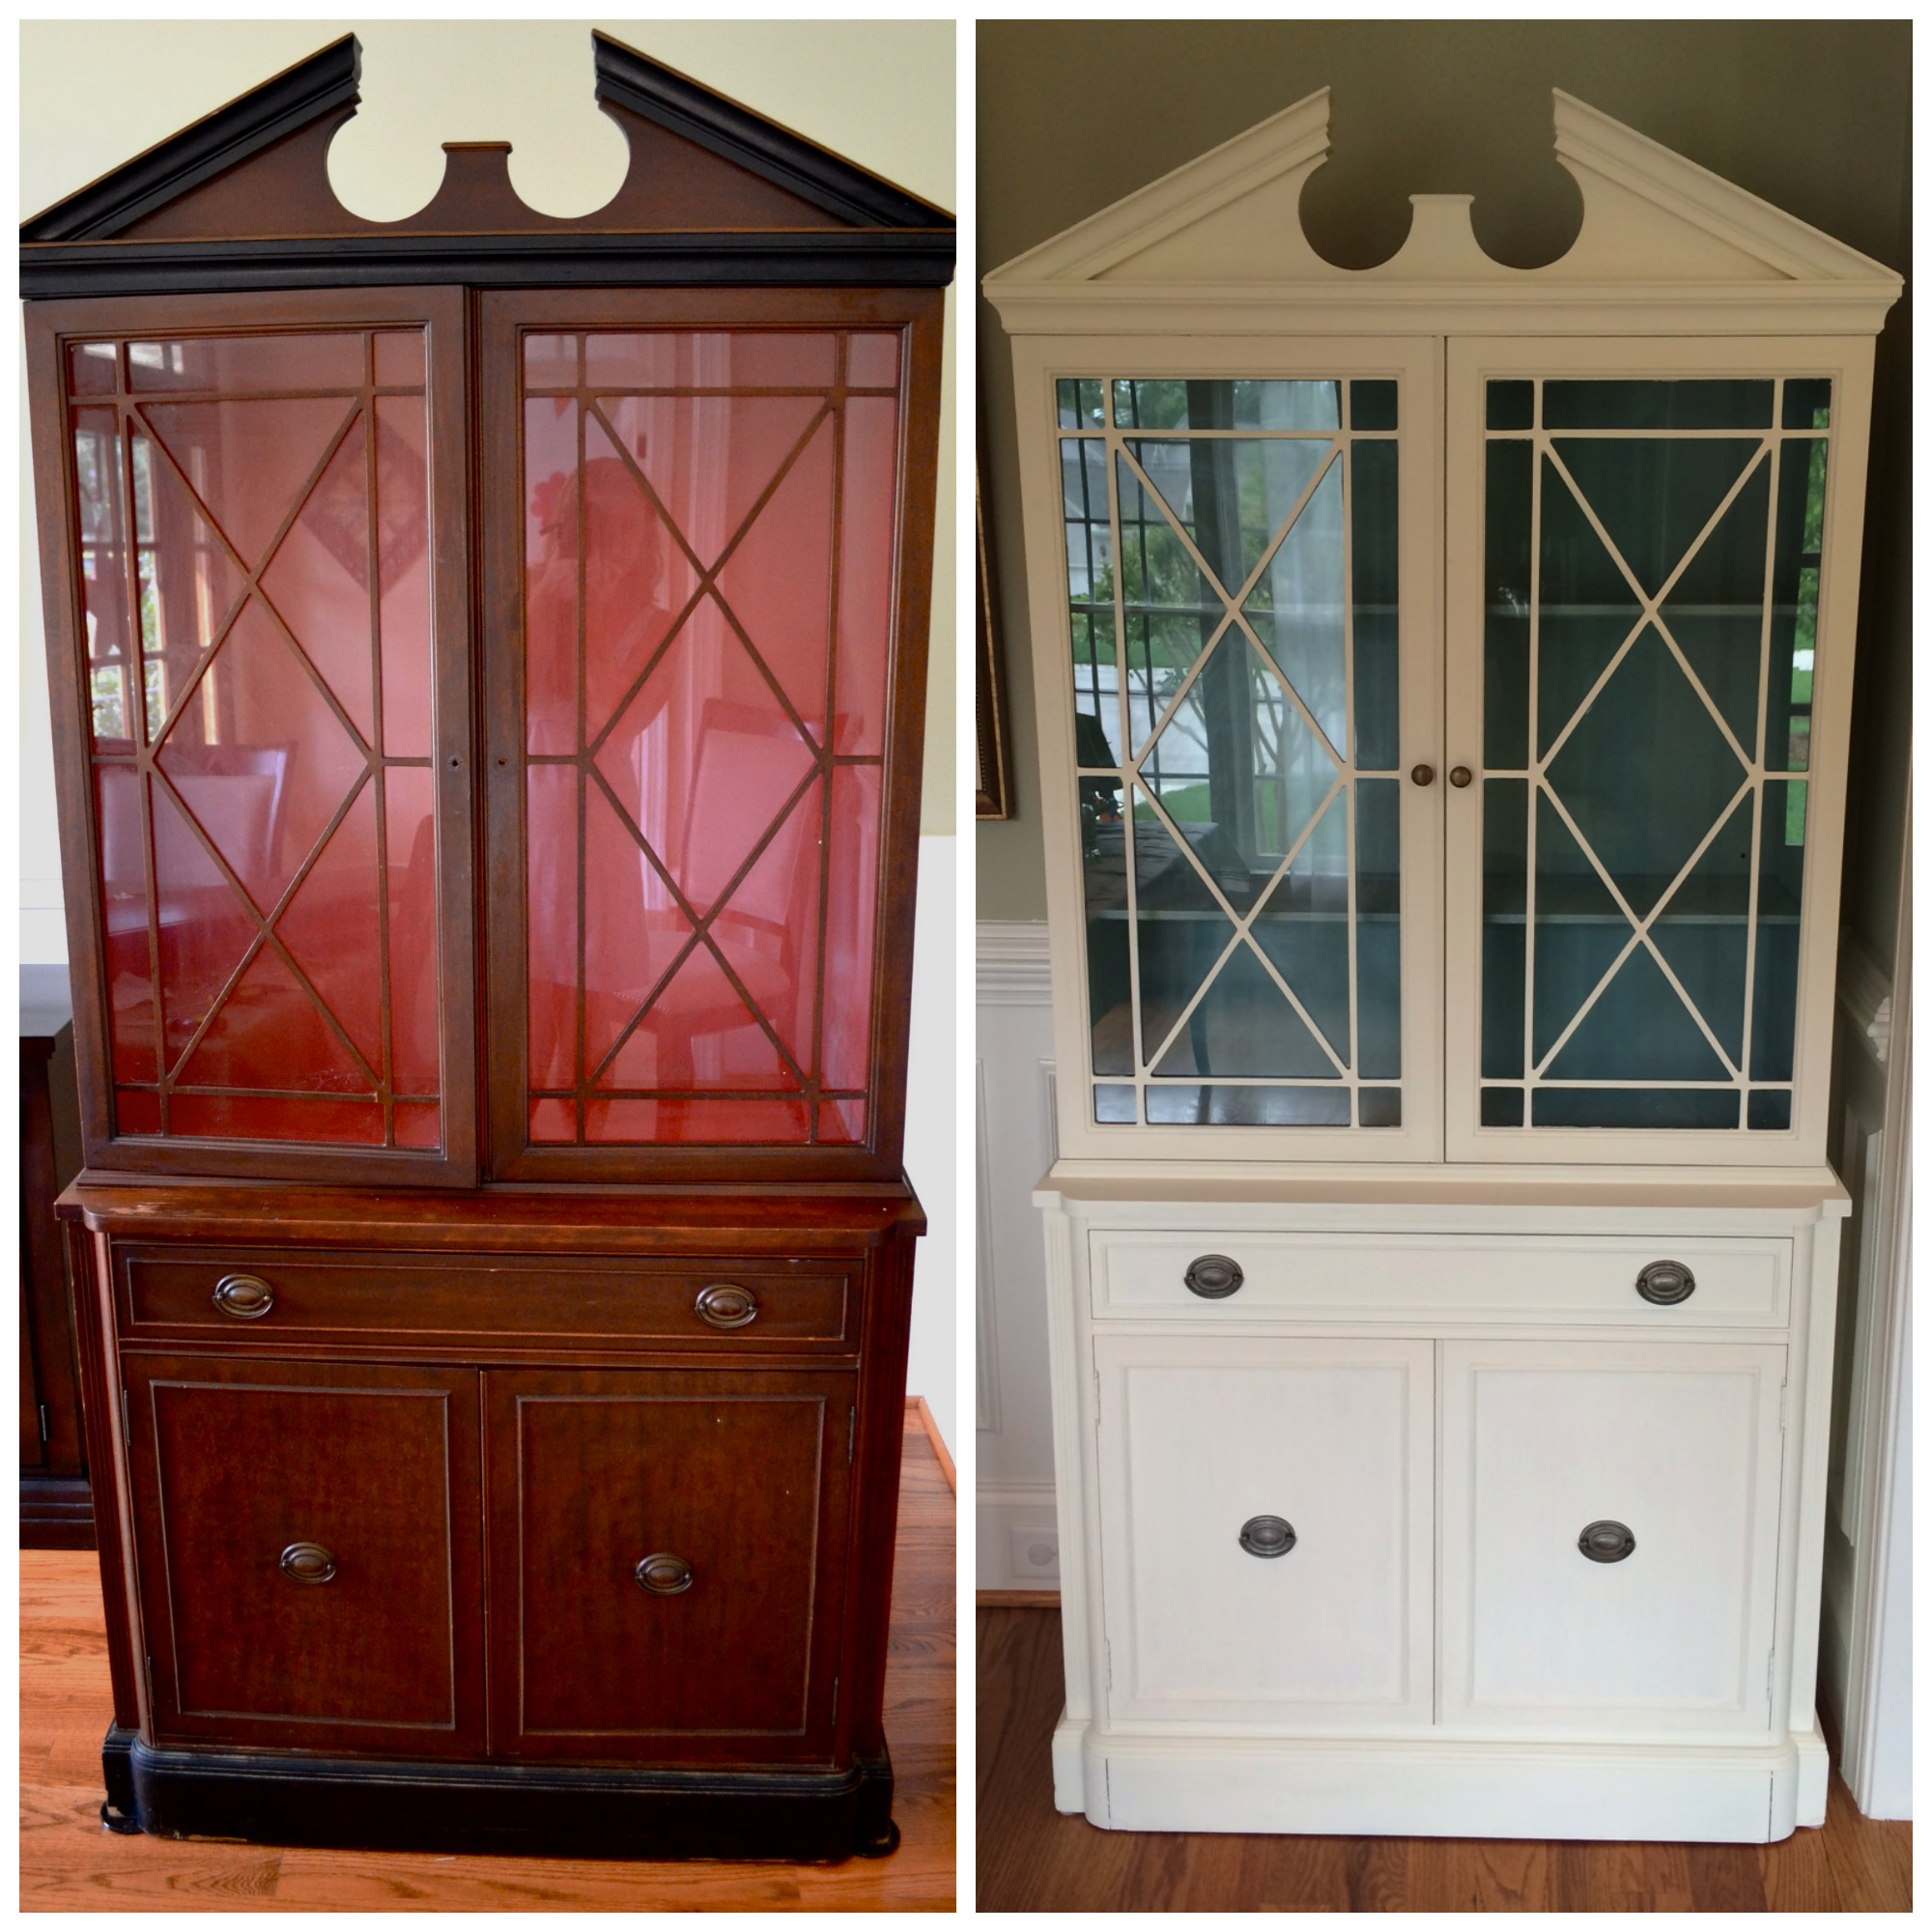 a my and bargain how such refinishing china other mom cabinet i craigslist cost am s old pin refinished triple of the to